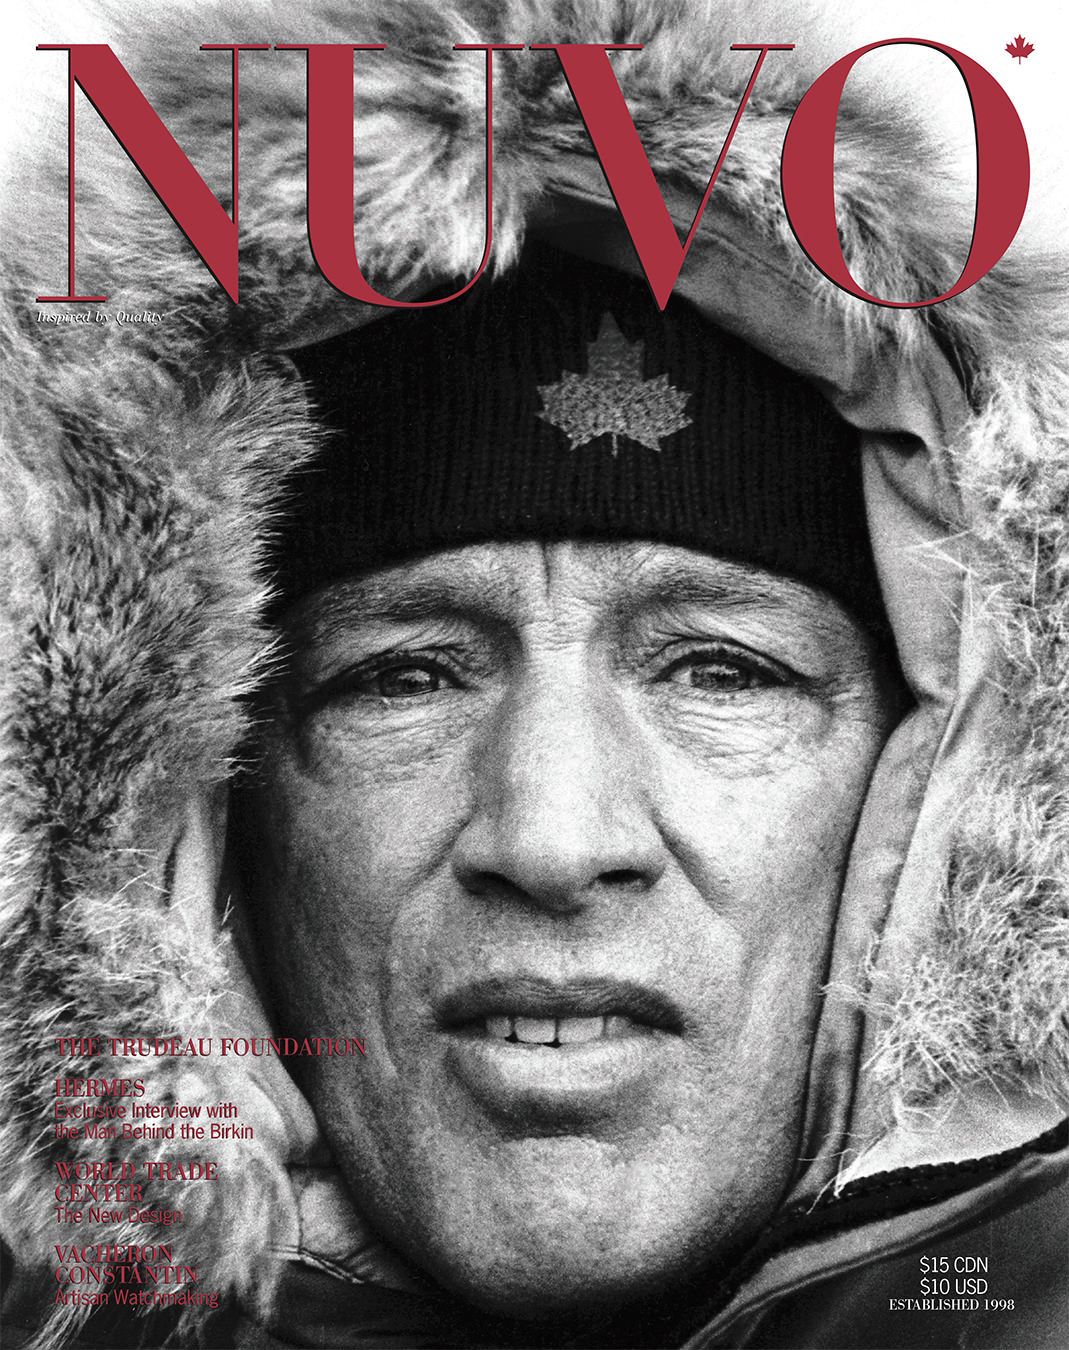 NUVO Magazine Winter 2003 Cover featuring Pierre Elliott Trudeau